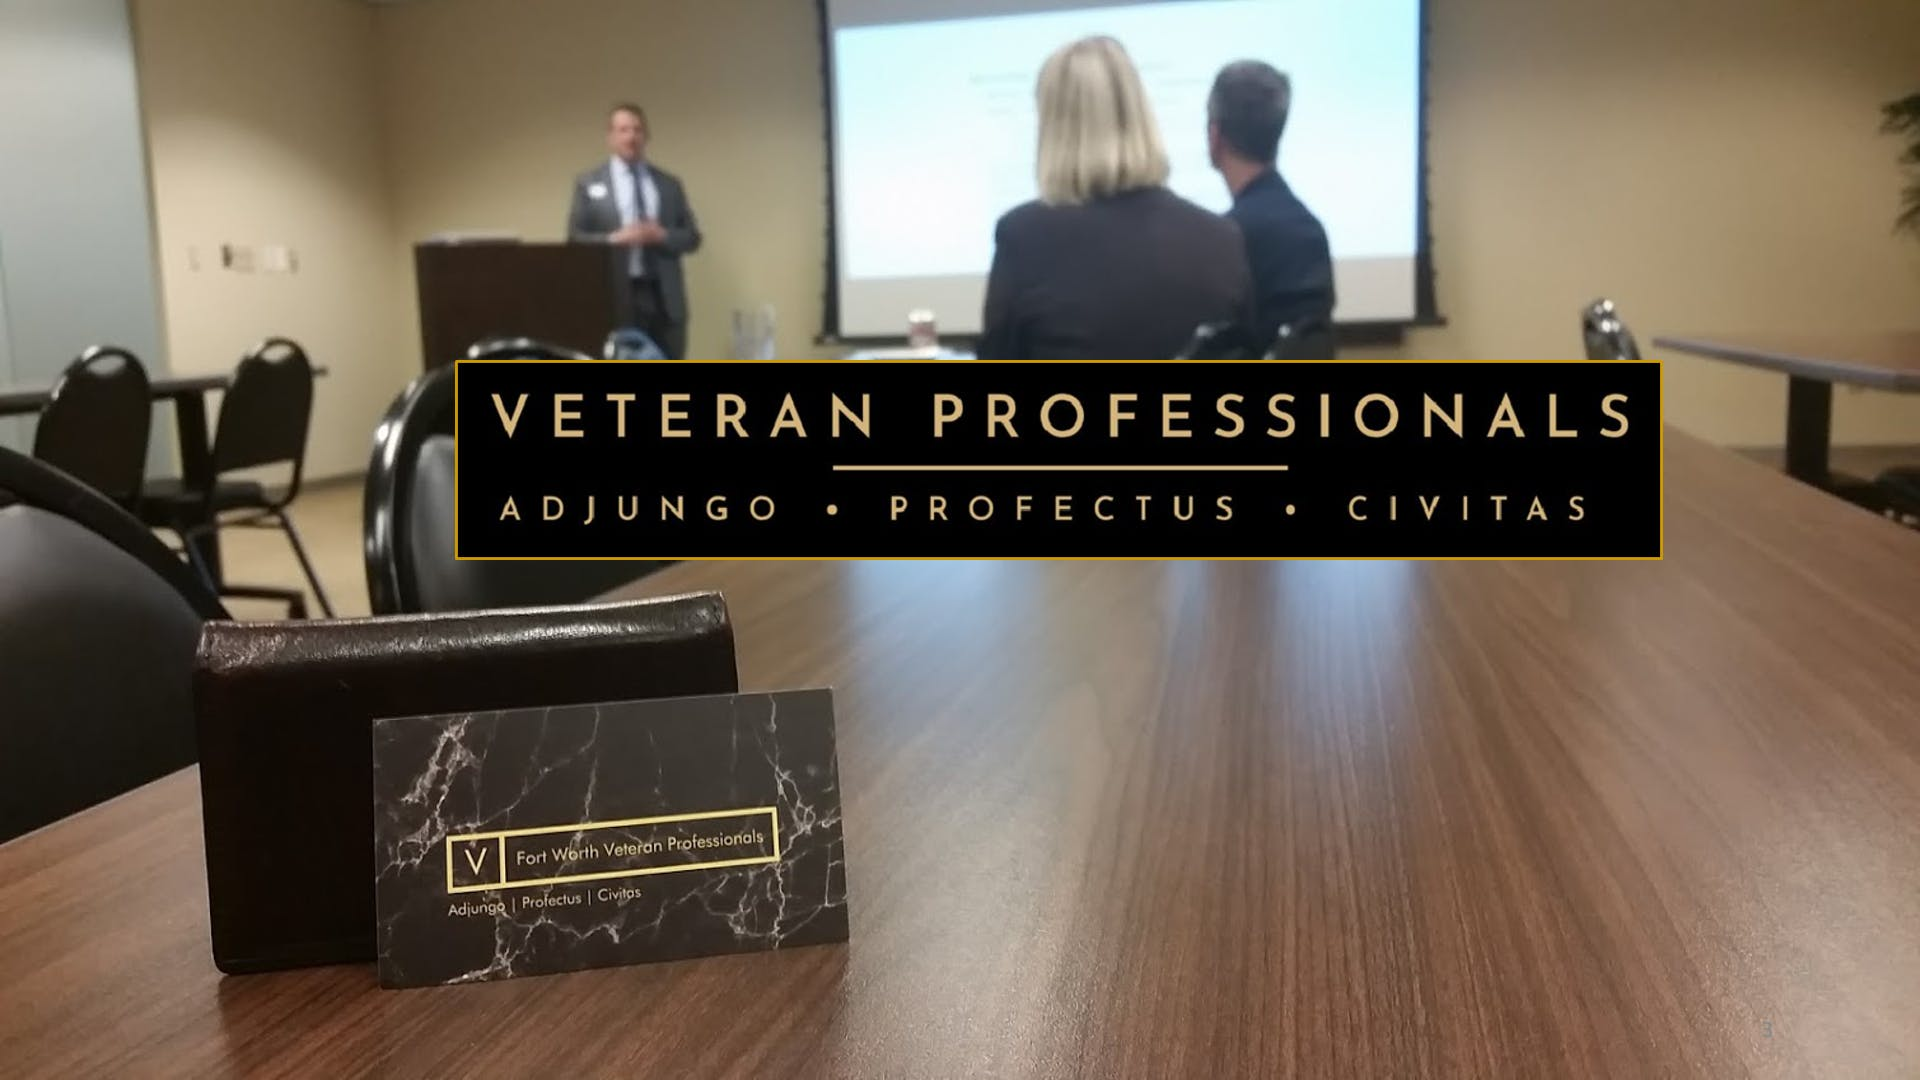 Professional Development Series Veterans Entrepreneurship At